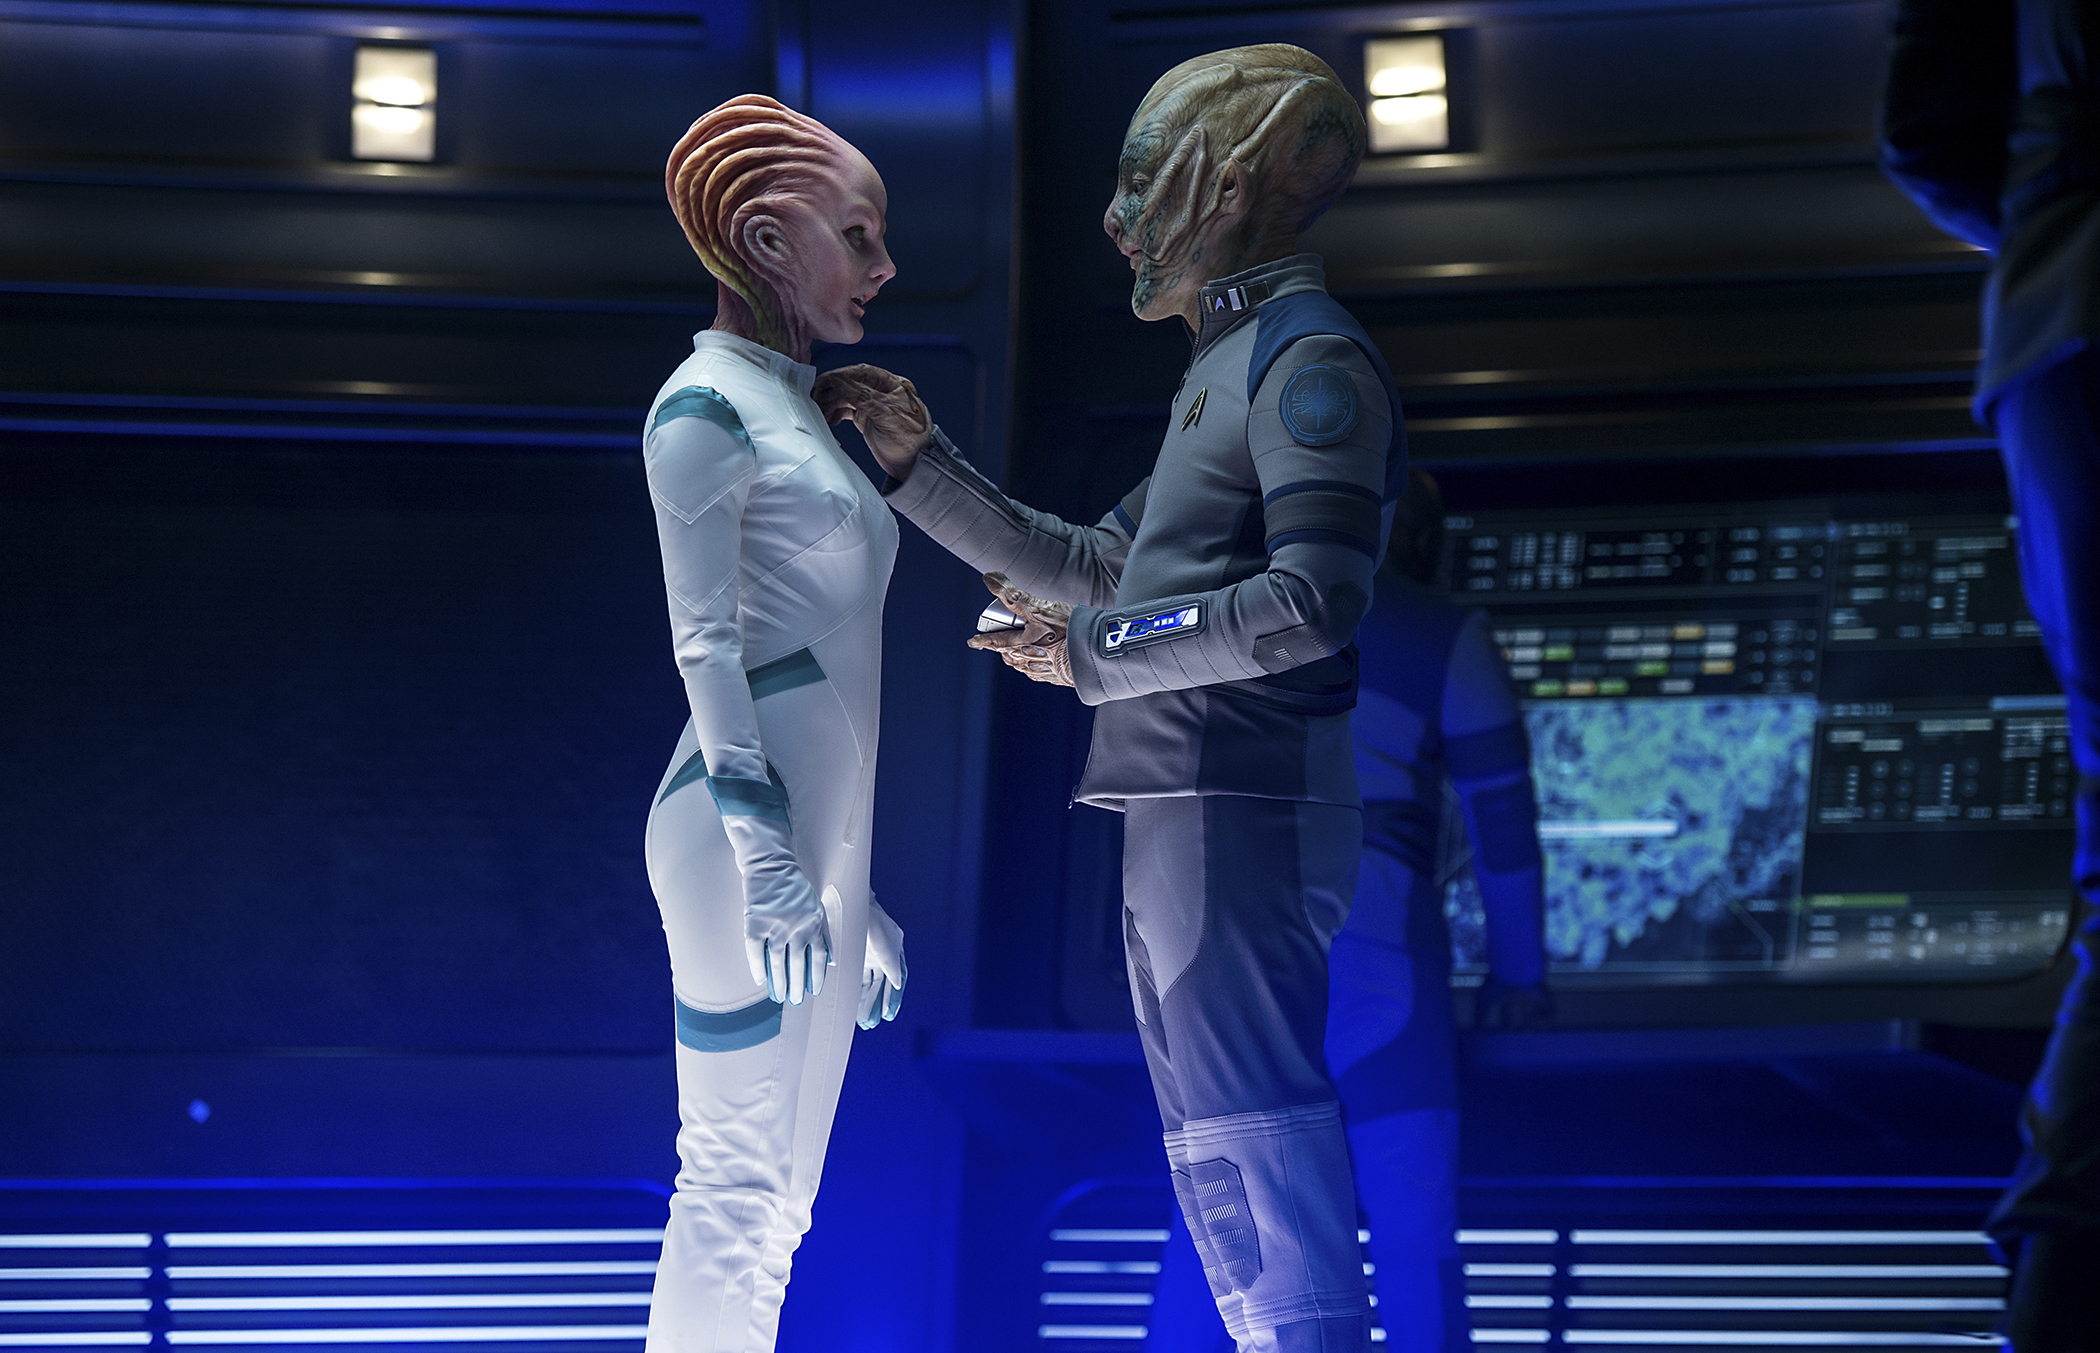 The alien on the right is Amazon CEO Jeff Bezos, in the new movie  Star Trek Beyond.